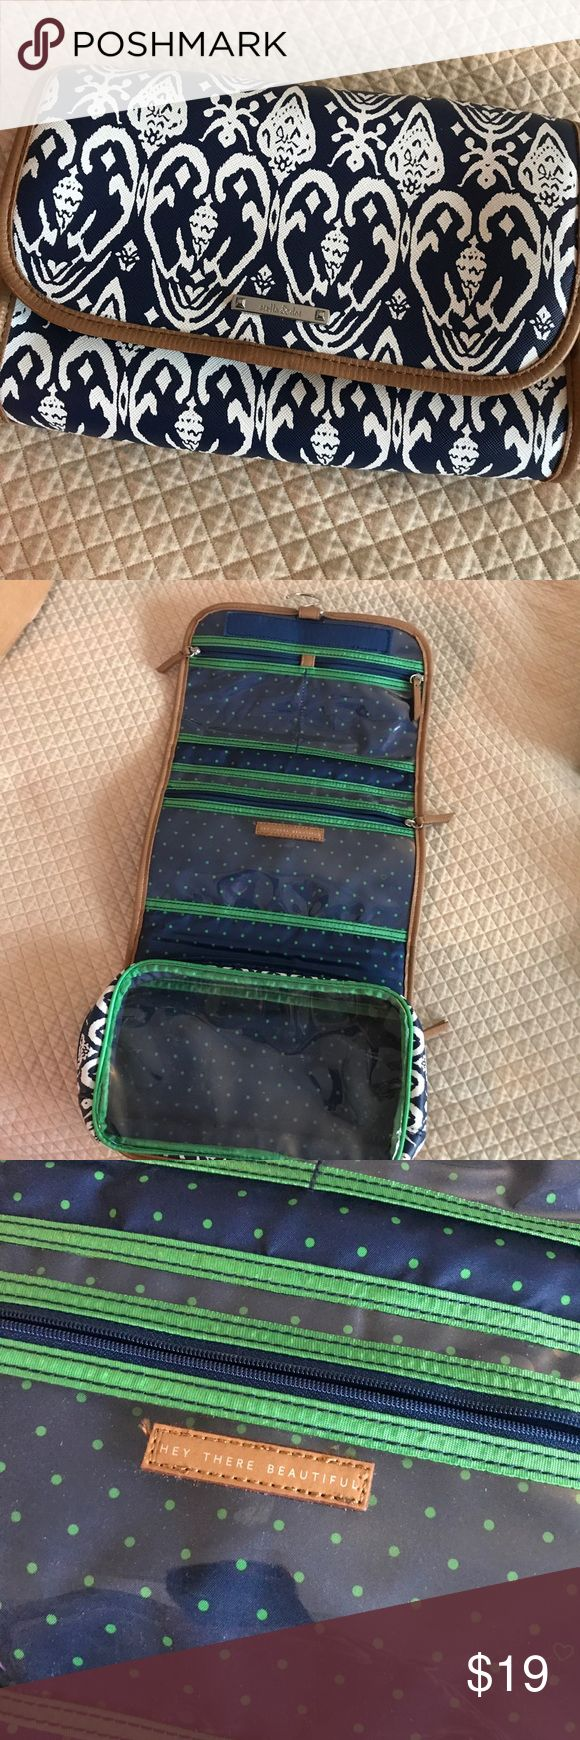 Best 25 hanging travel organizer ideas on pinterest car for Stella and dot jewelry wholesale